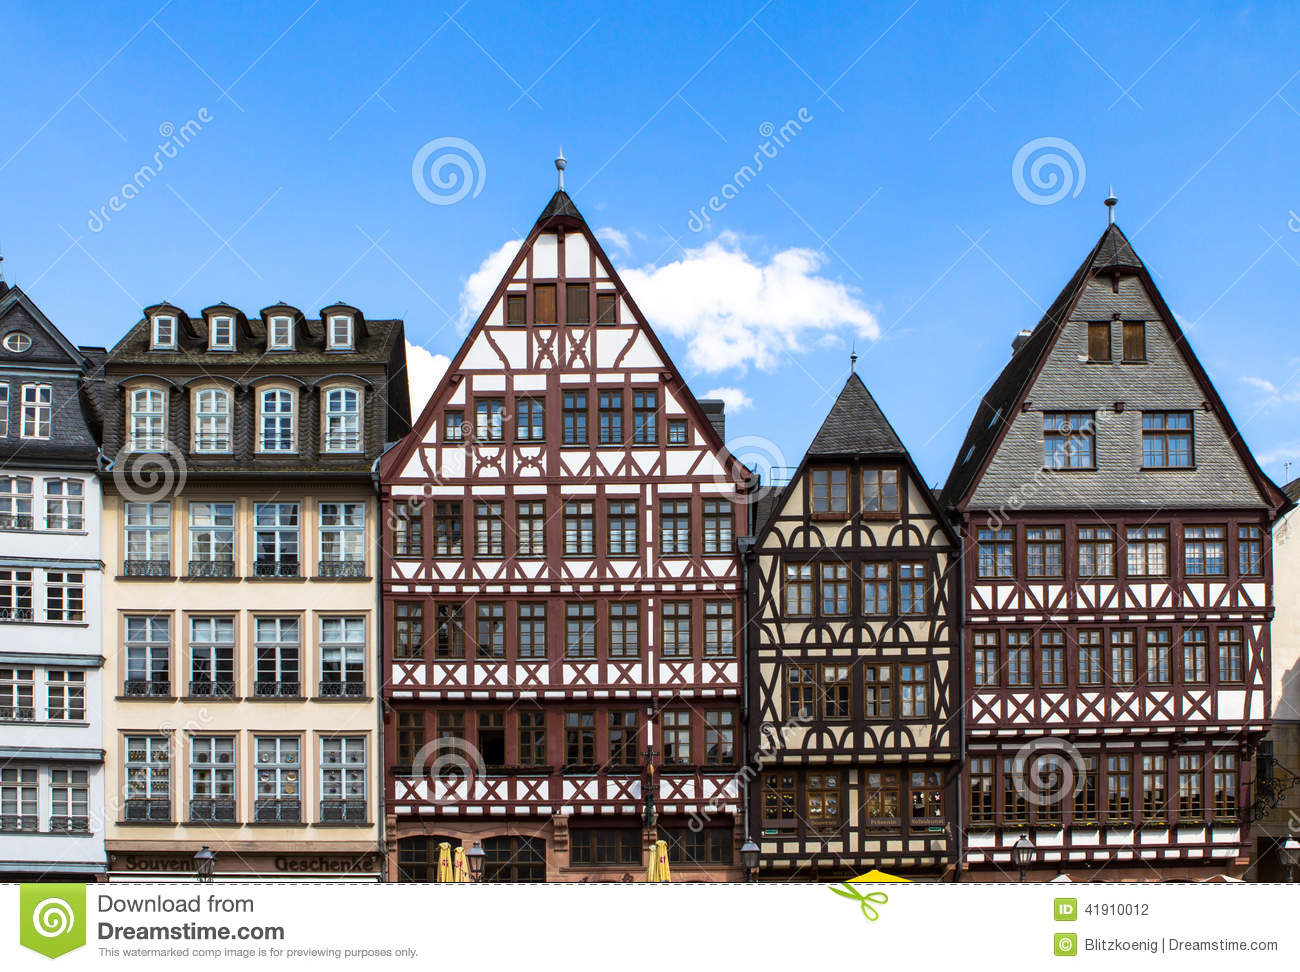 german classical architecture stock photo - image: 41910012